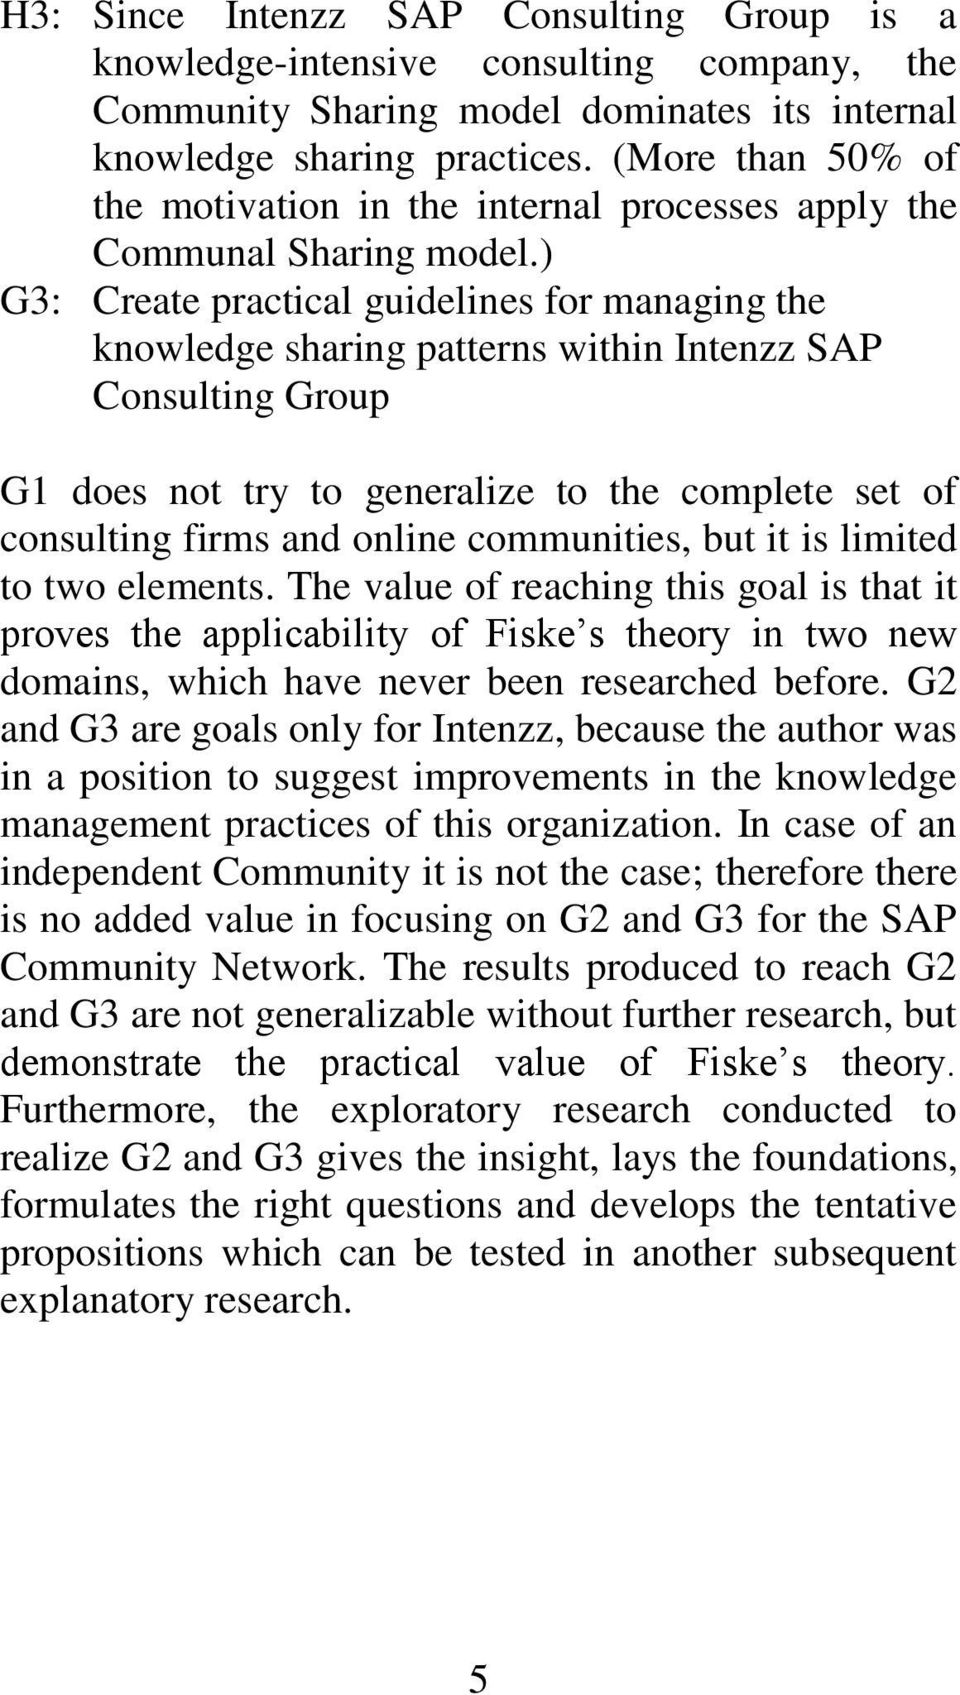 ) G3: Create practical guidelines for managing the knowledge sharing patterns within Intenzz SAP Consulting Group G1 does not try to generalize to the complete set of consulting firms and online